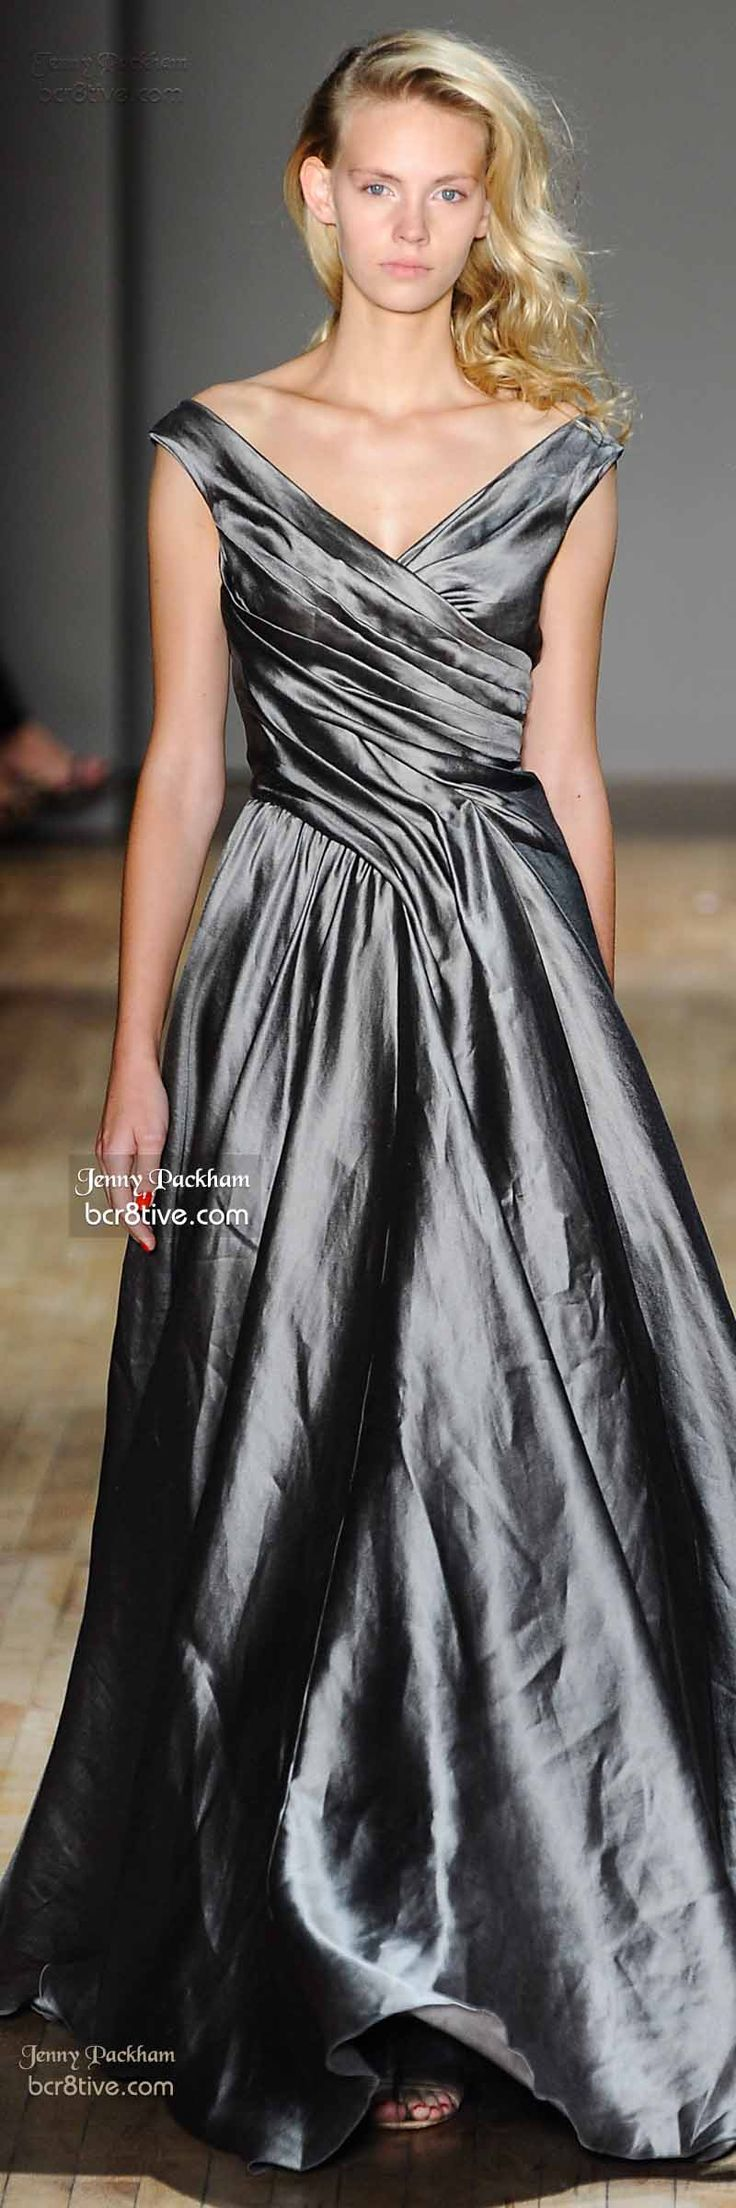 Jenny Packham Spring 2015 120914   jaglady...interesting bodice and I love the color...you can wear any color shoe/accessories with this.